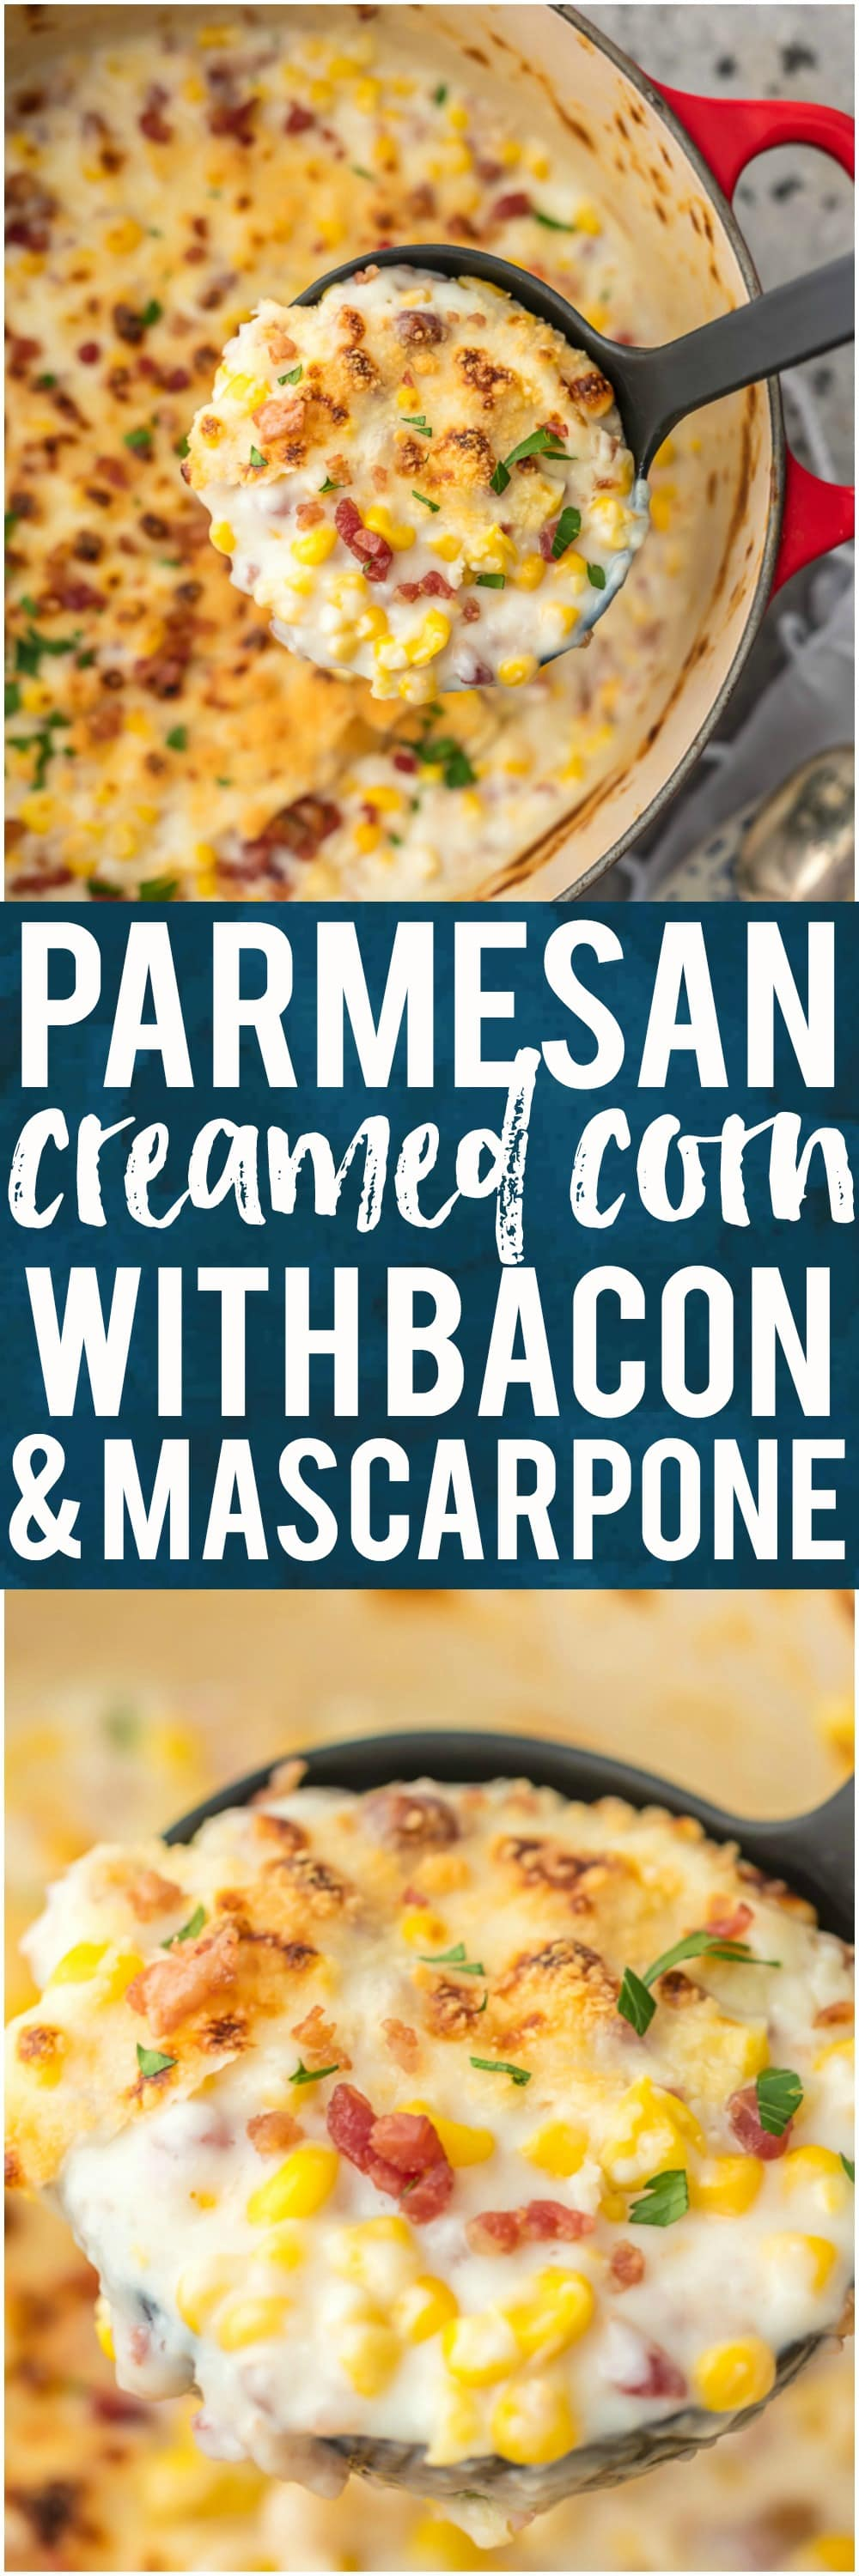 This PARMESAN CREAMED CORN WITH BACON AND MASCARPONE is one of our favorite holiday side dish recipes. If you're looking for a fabulous and unique gluten free Thanksgiving or Christmas recipe, this is it!